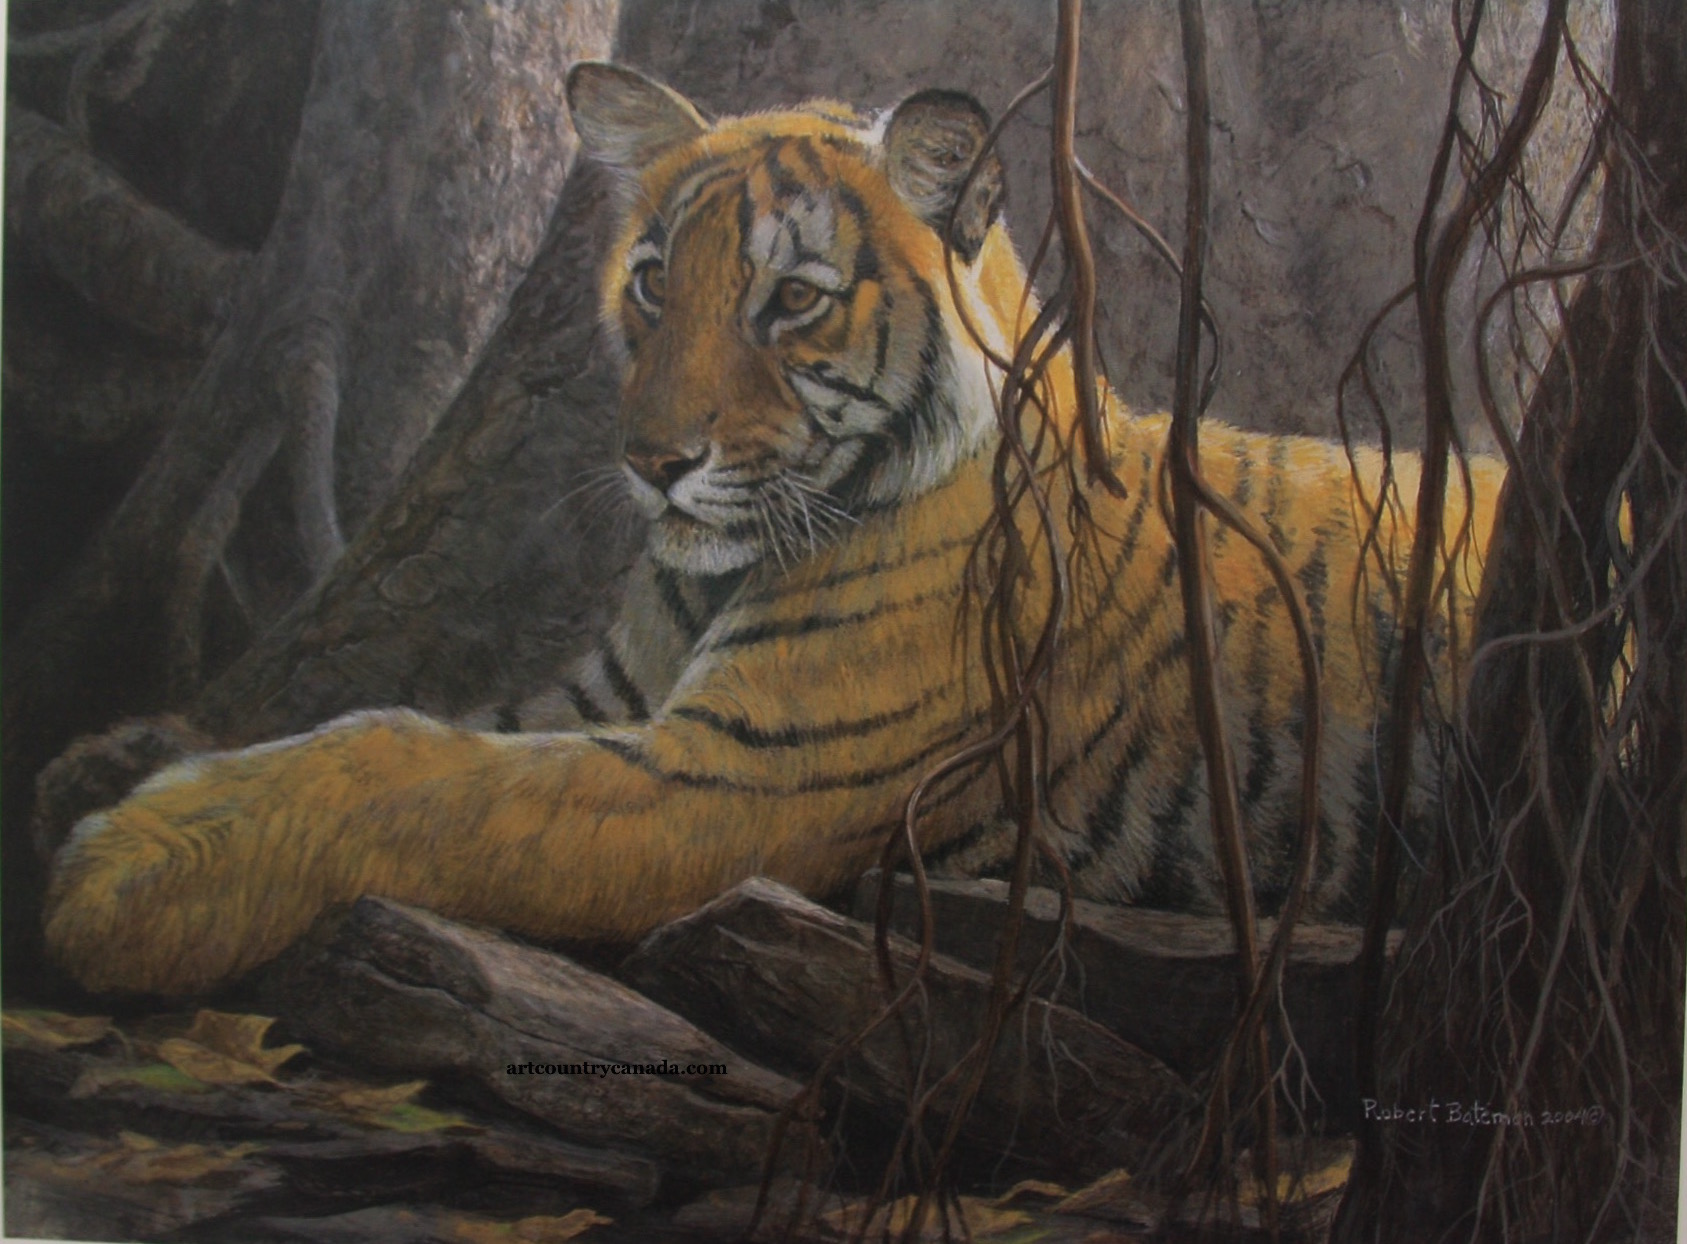 Robert Bateman Under The Banyan Siberian Tiger